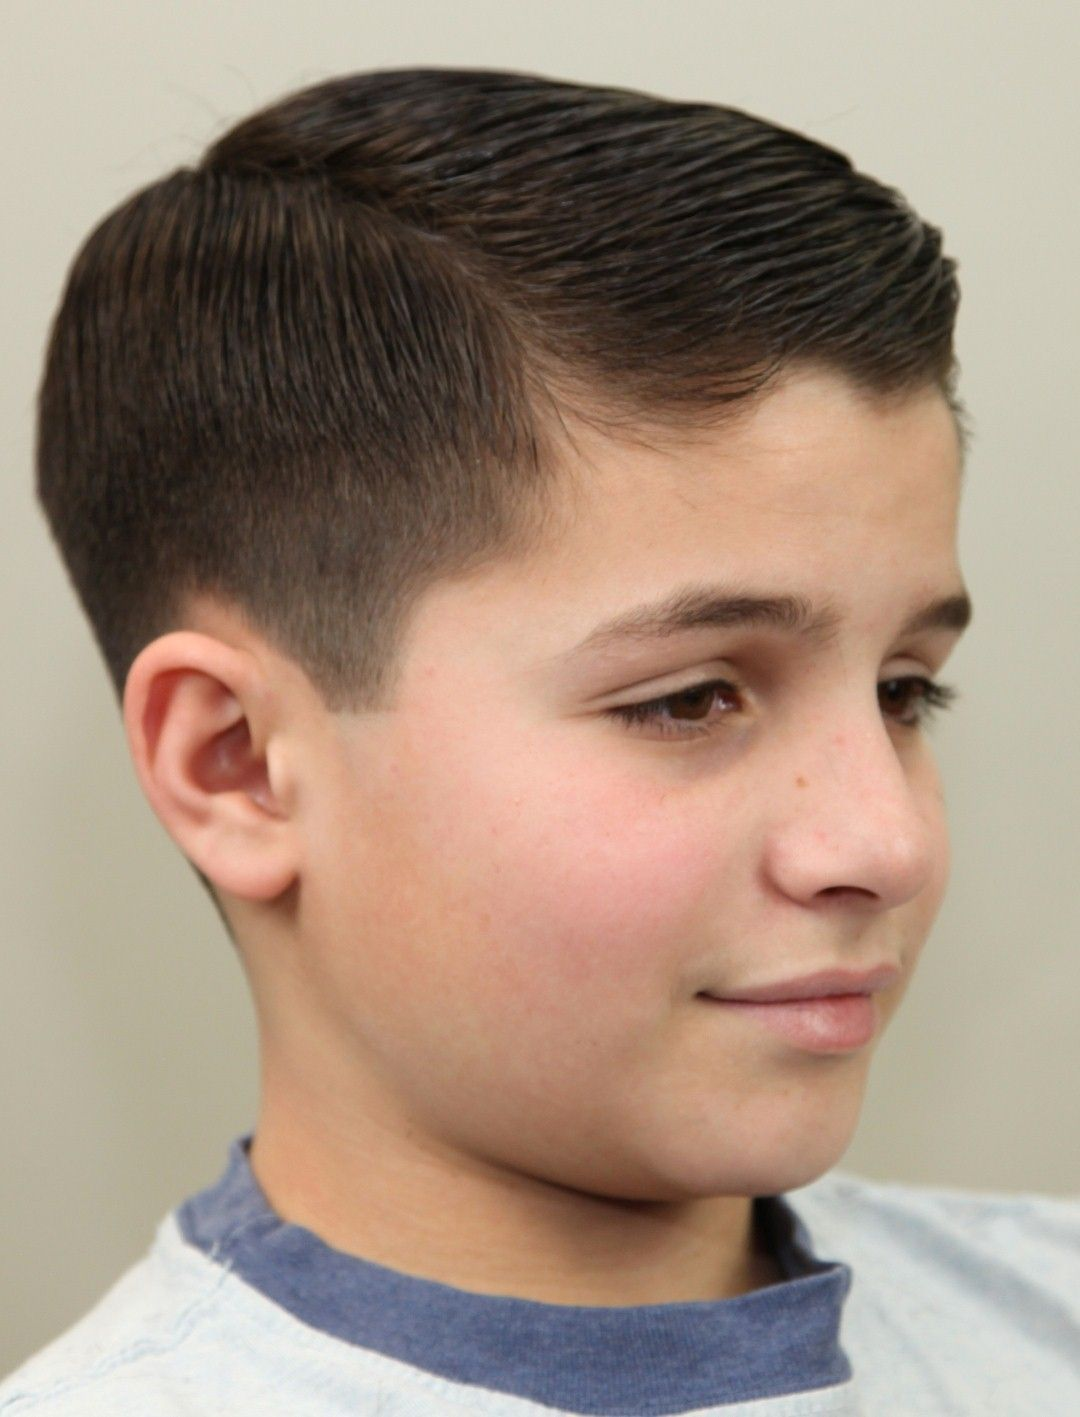 pictures of boys kids hairstyles 2015 | children's short